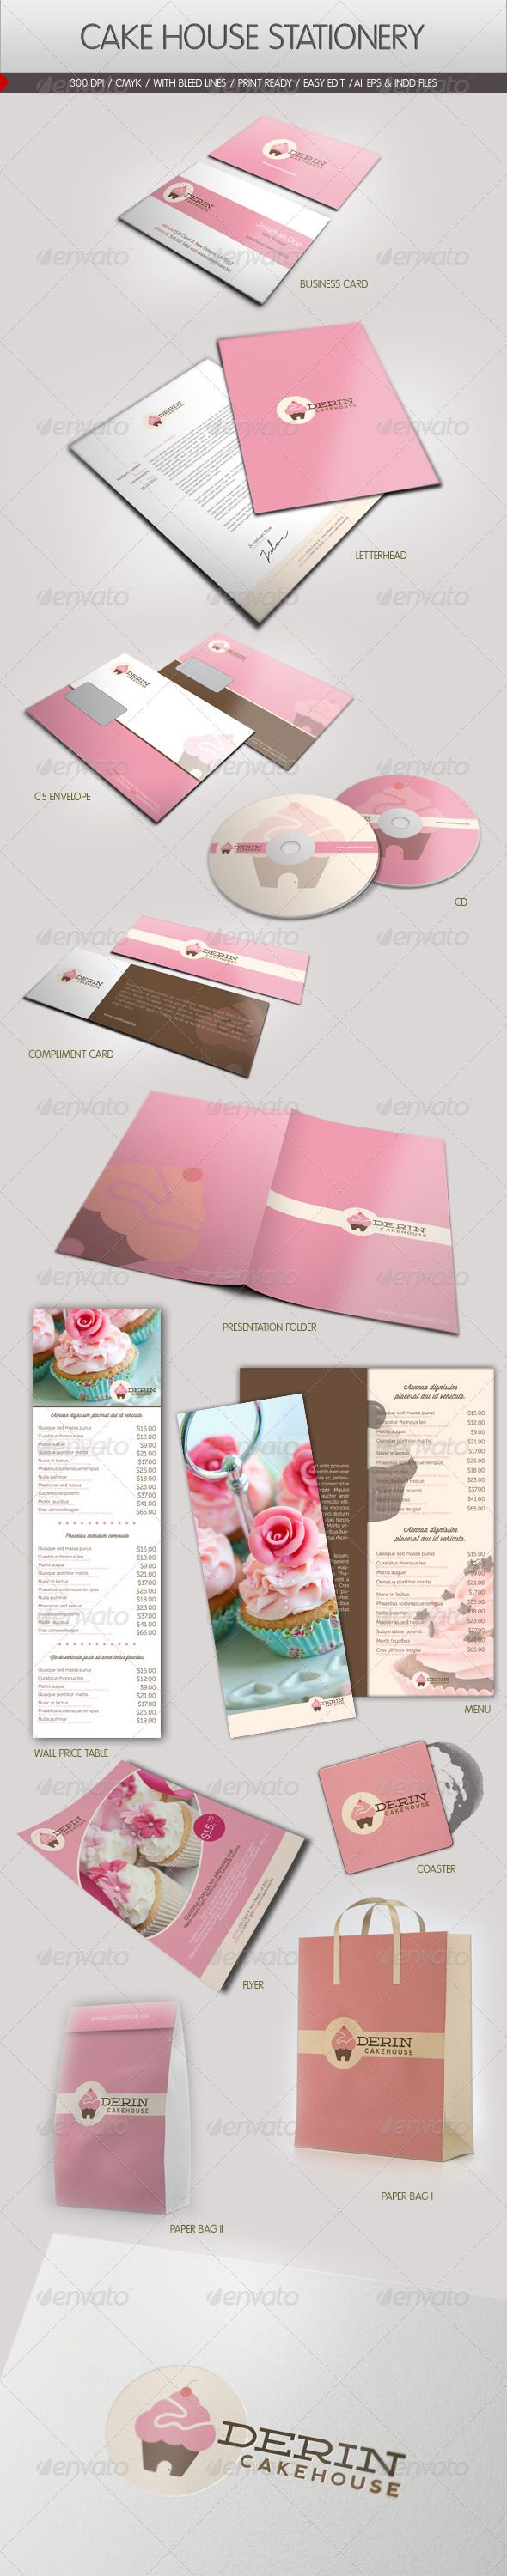 Cake House Corporate Identity - GraphicRiver Item for Sale